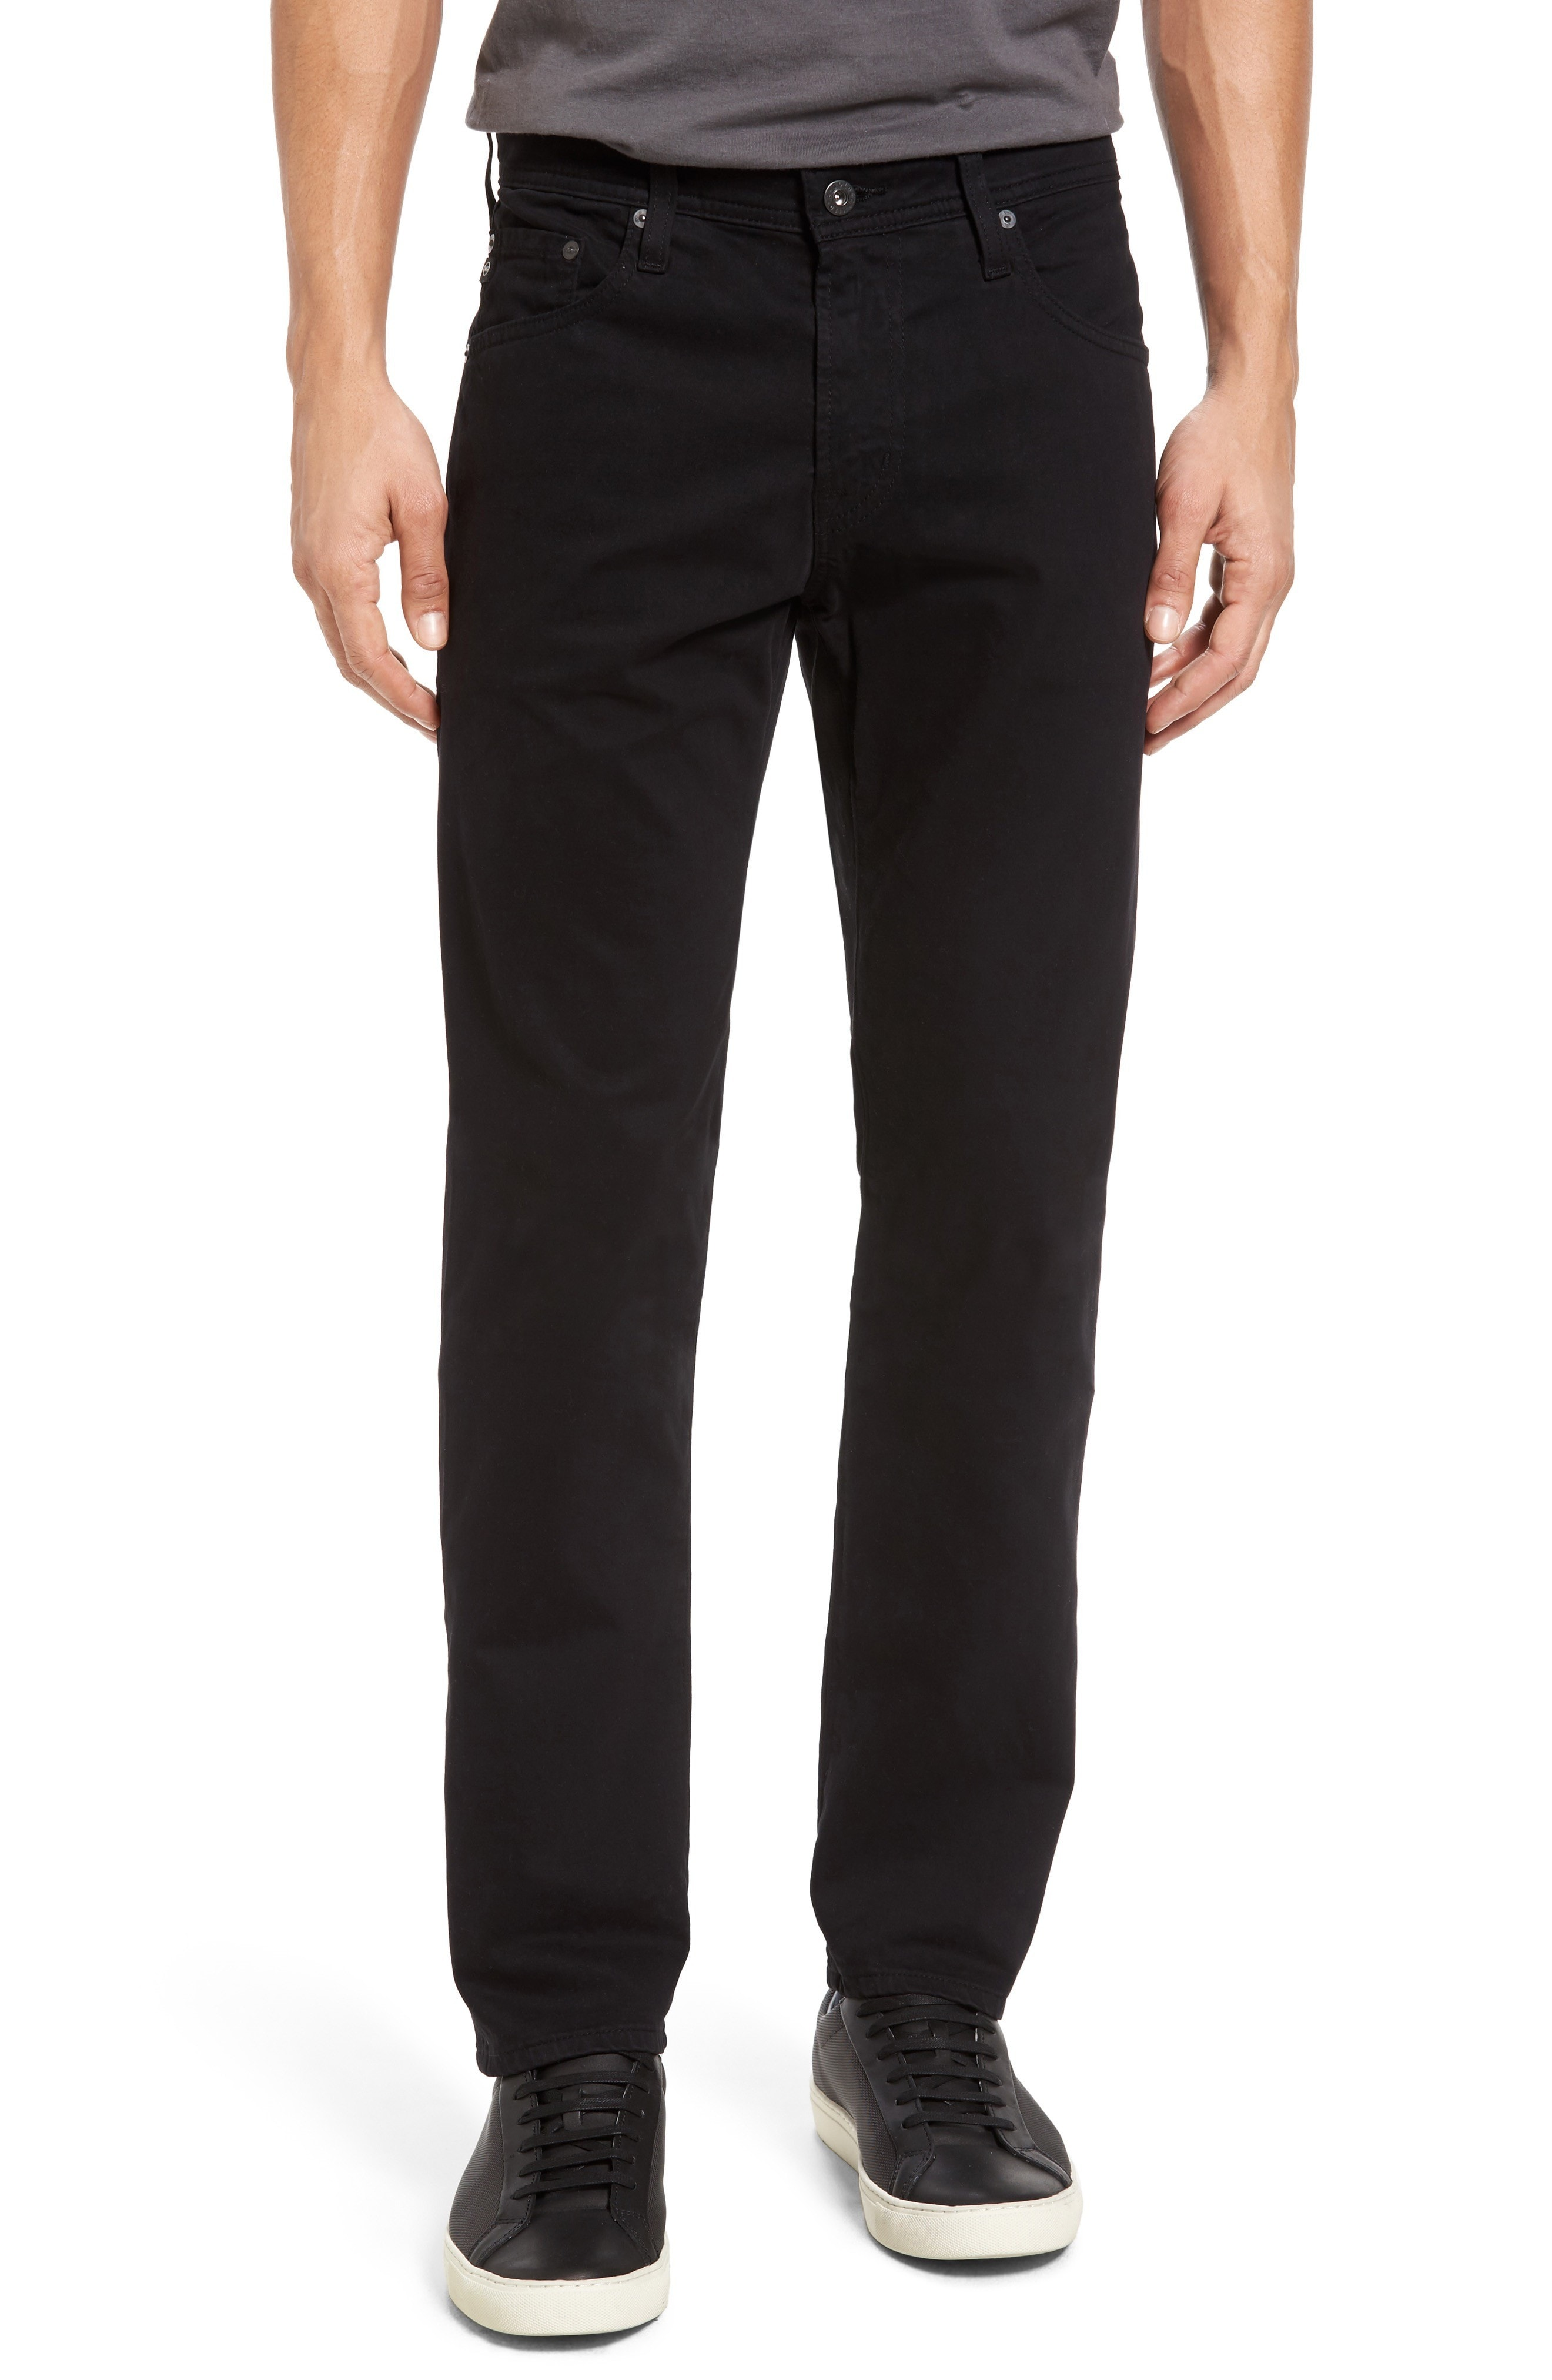 5-Pocket Pants for Men | Nordstrom